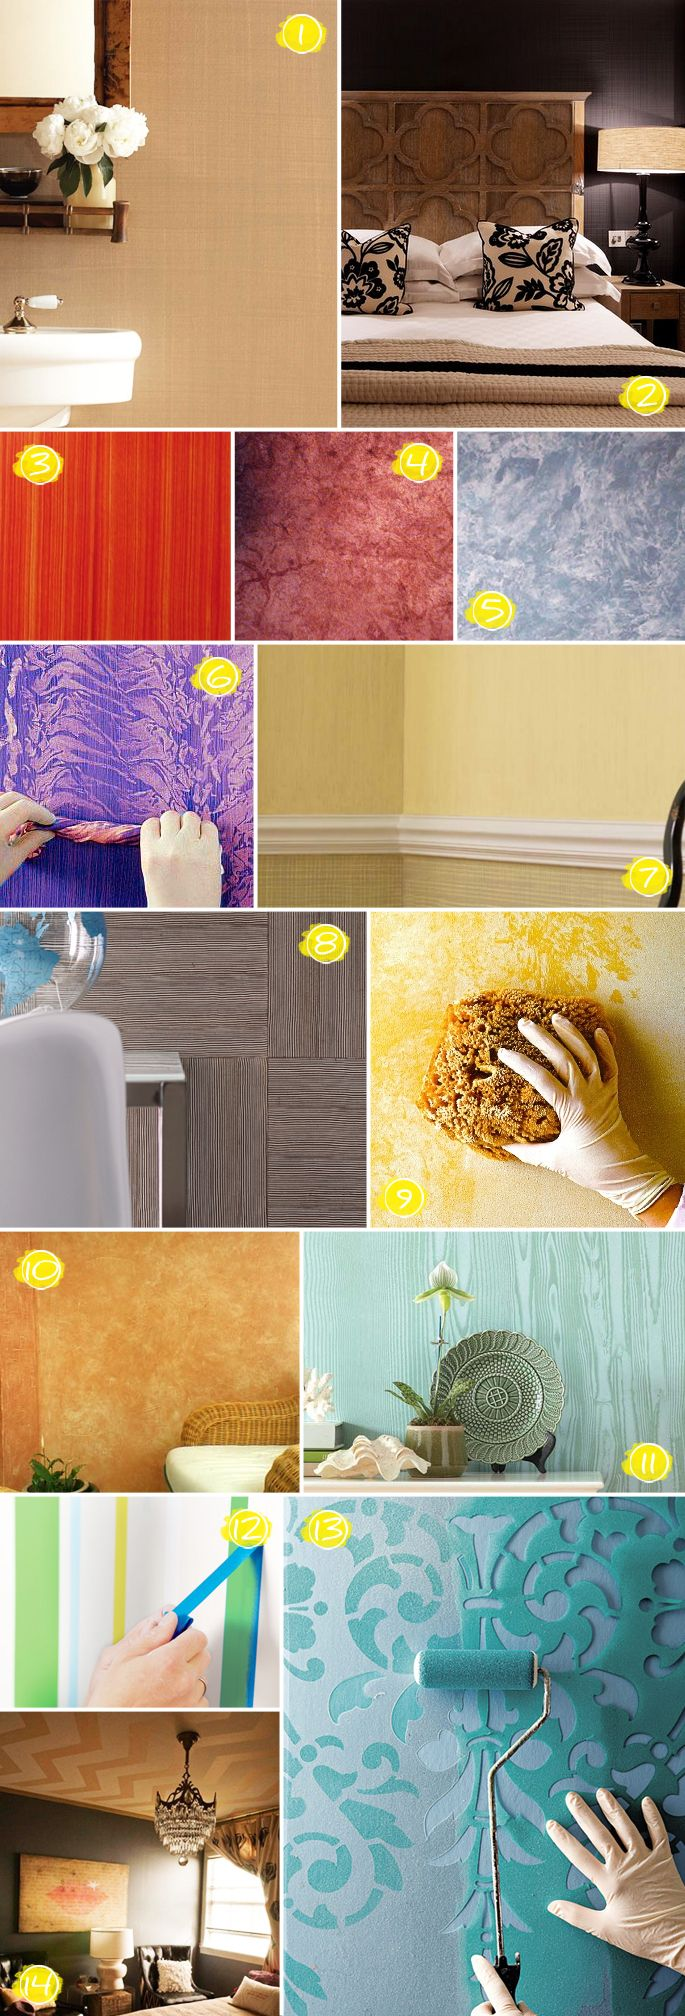 . Textured Wall Painting Ideas  From Faux Wood to Linen Effects   Home